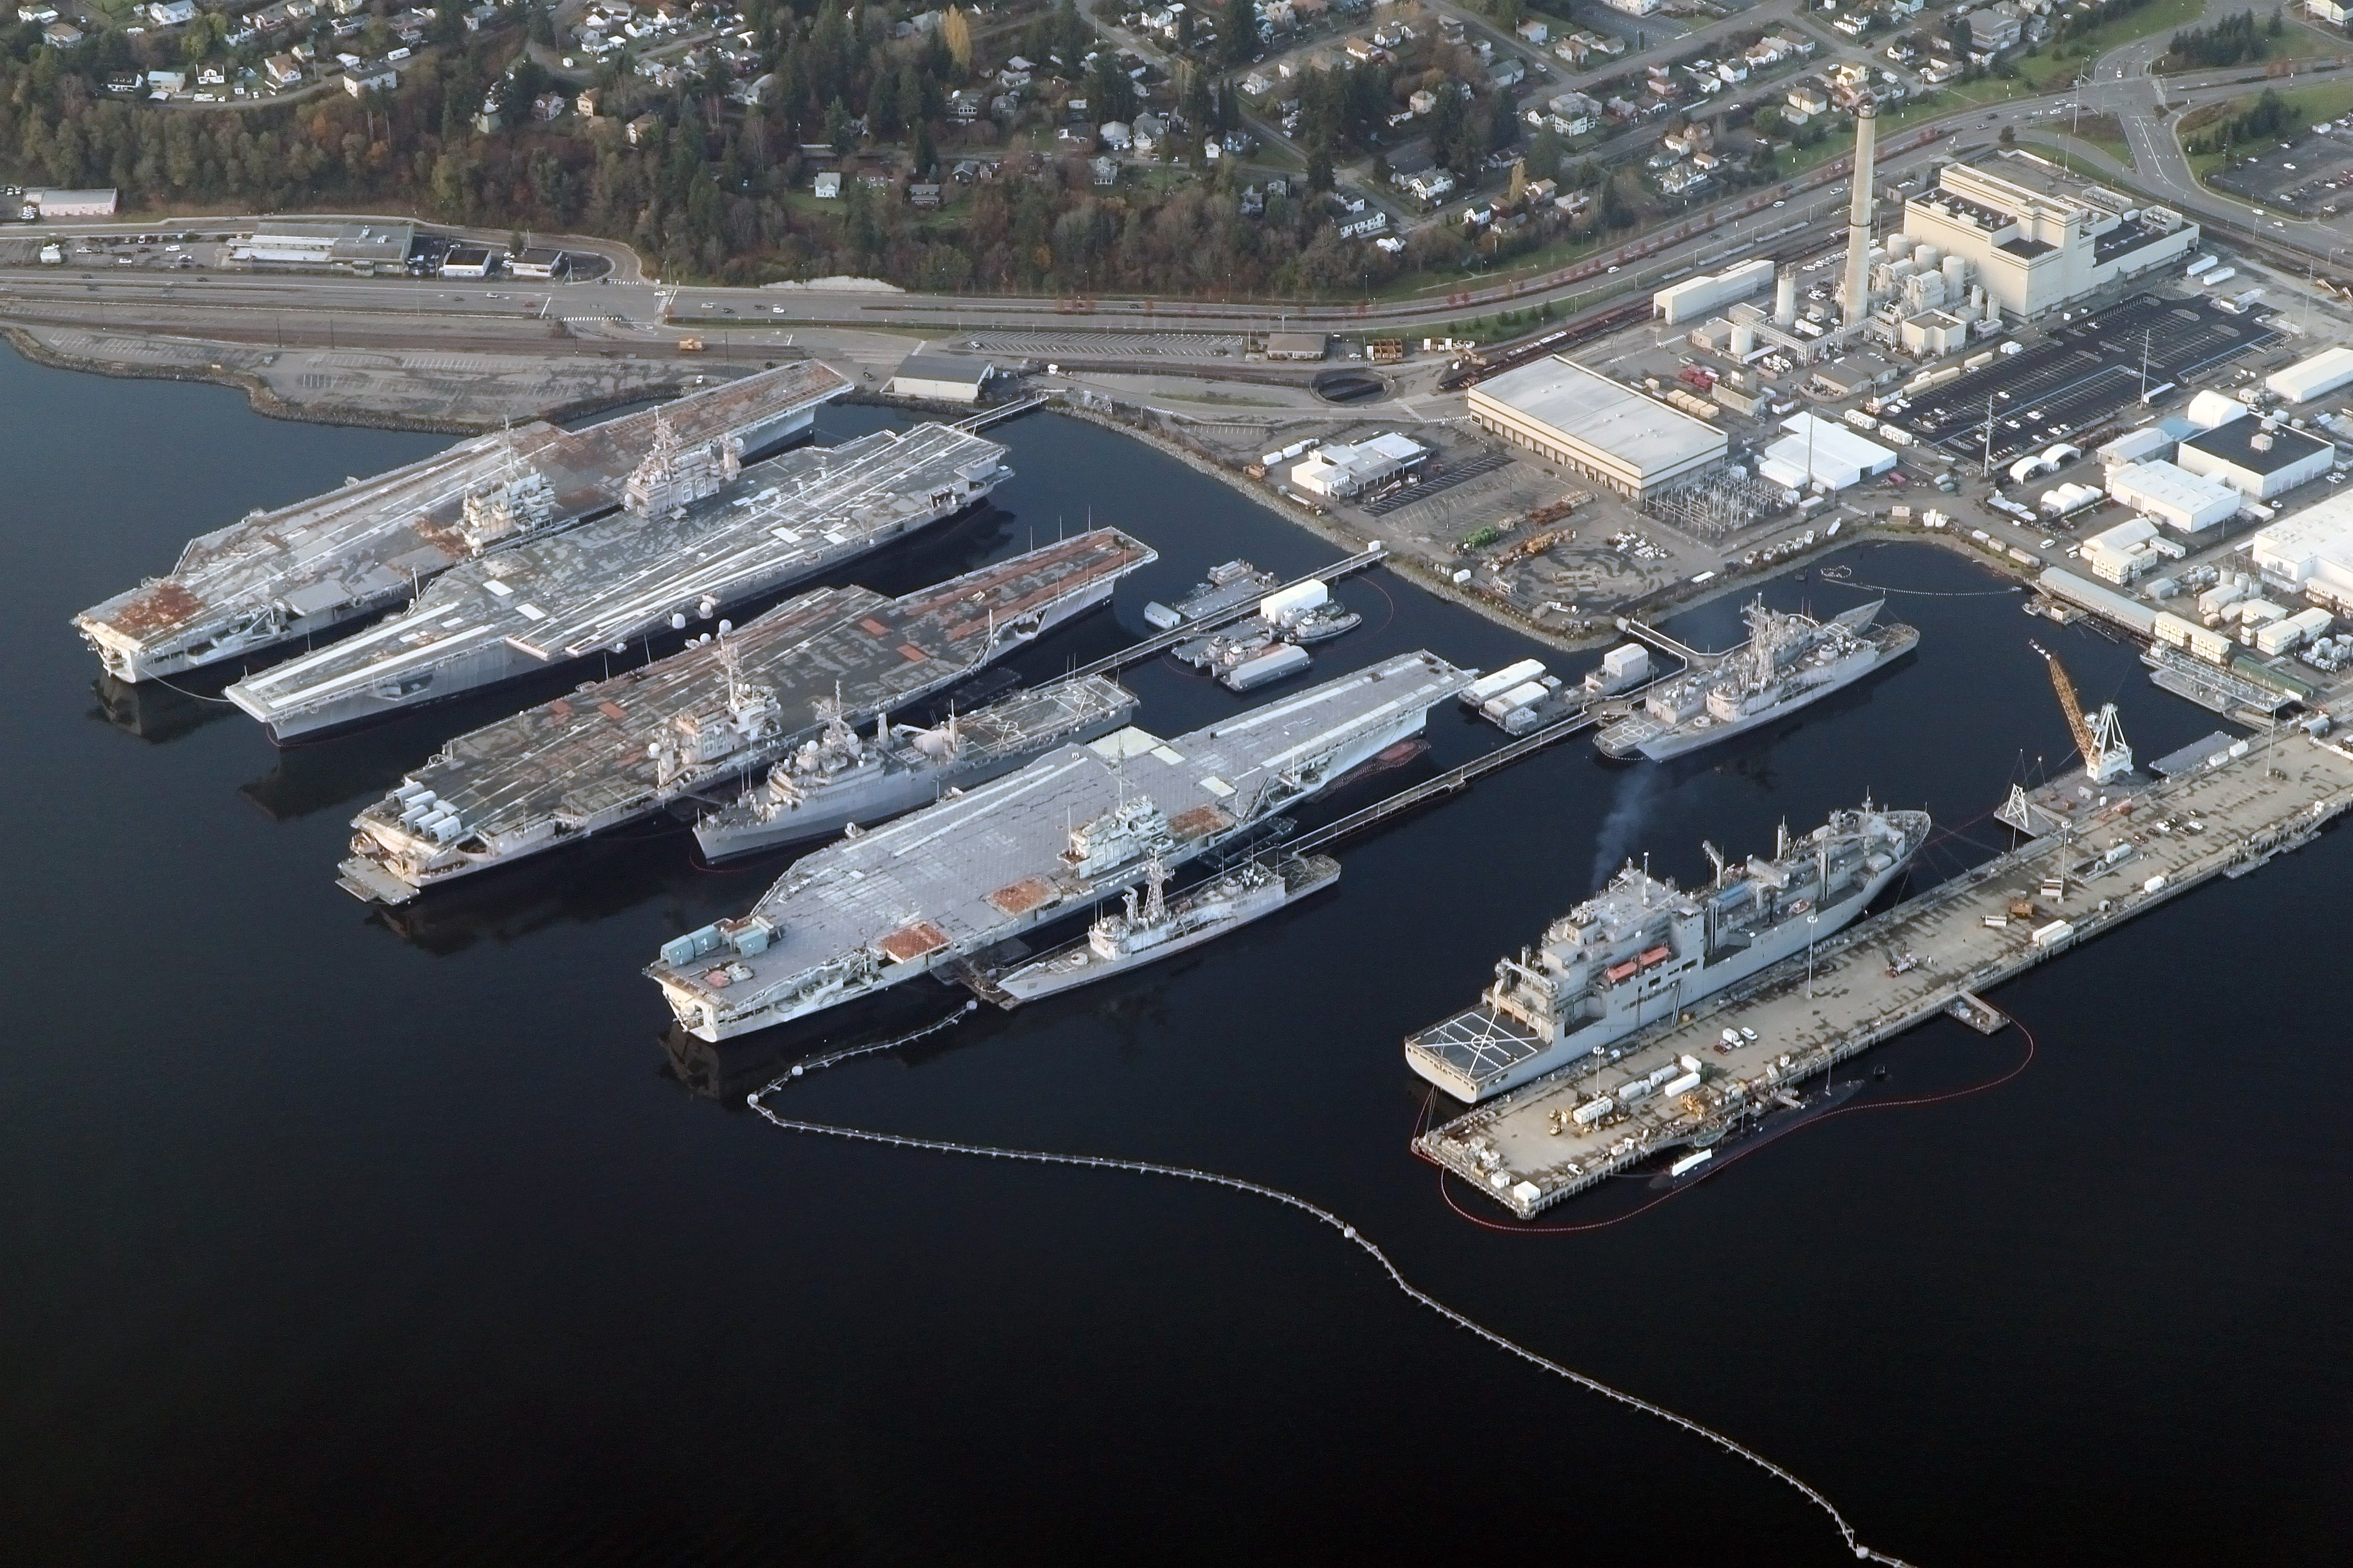 Puget Sound Naval Shipyard And Intermediate Maintenance Facility Wikiwand